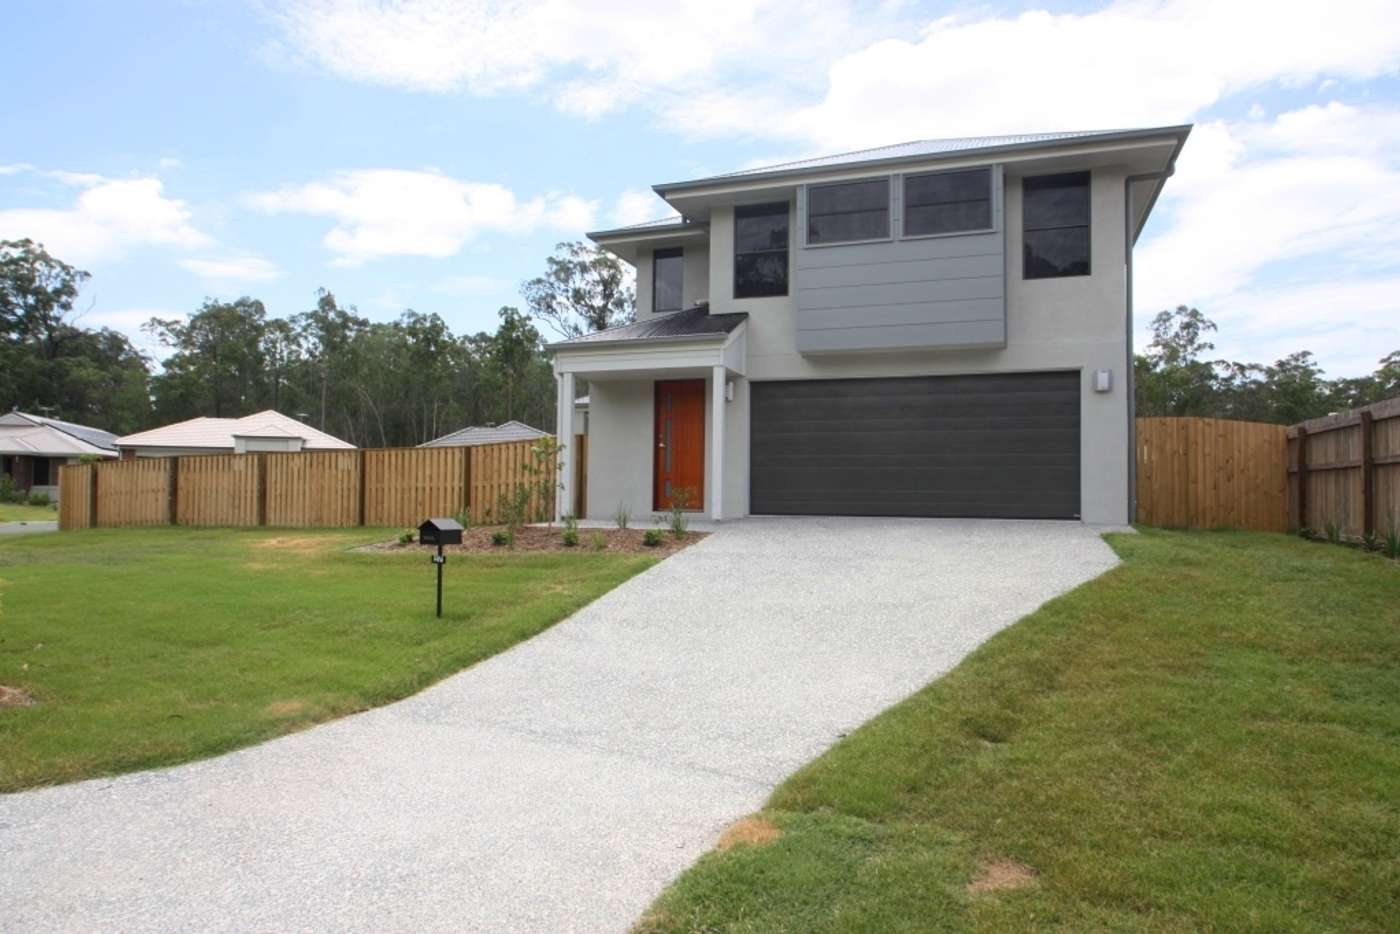 Main view of Homely house listing, 27 Marshall Circuit, Coomera QLD 4209